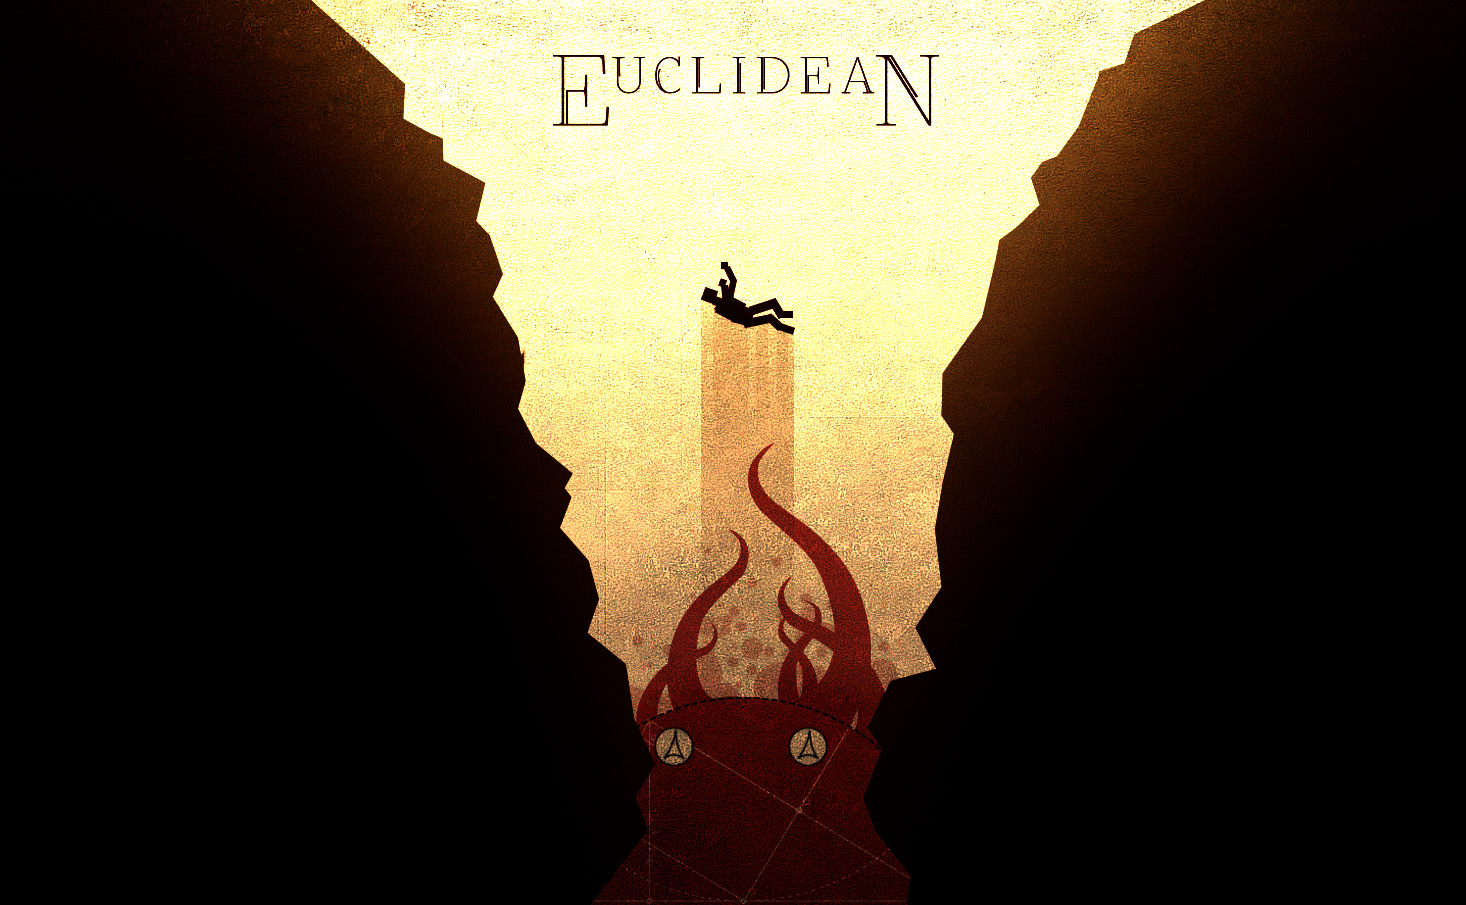 The geometric horror game Euclidean is Lovecraft levels of